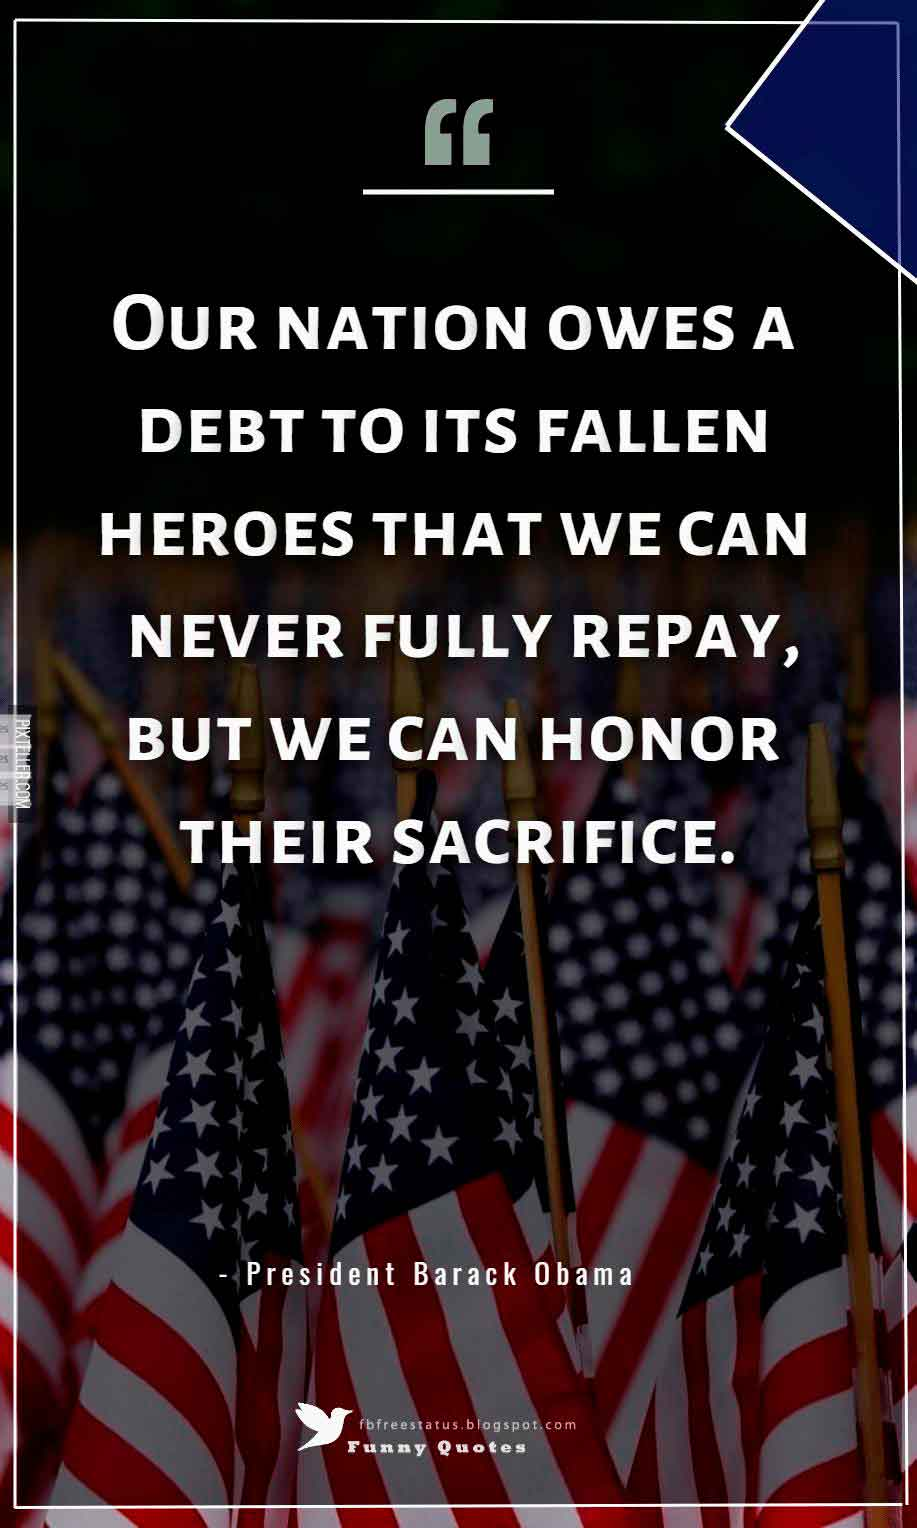 �Our nation owes a debt to its fallen heroes that we can never fully repay, but we can honor their sacrifice.� ? President Barack Obama